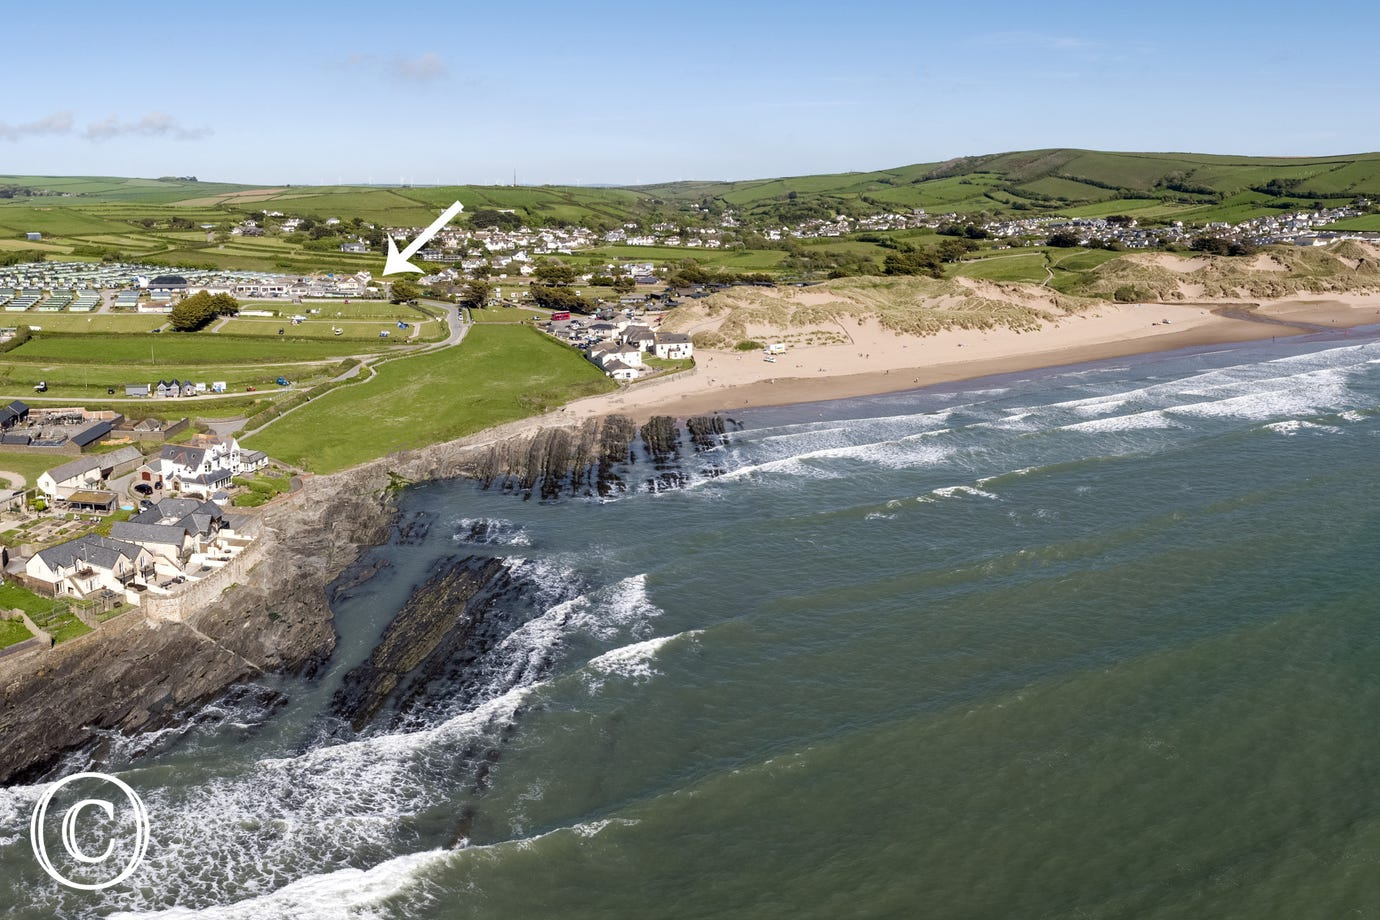 This aerial view shows just how close Beach Cottage is to the beach!